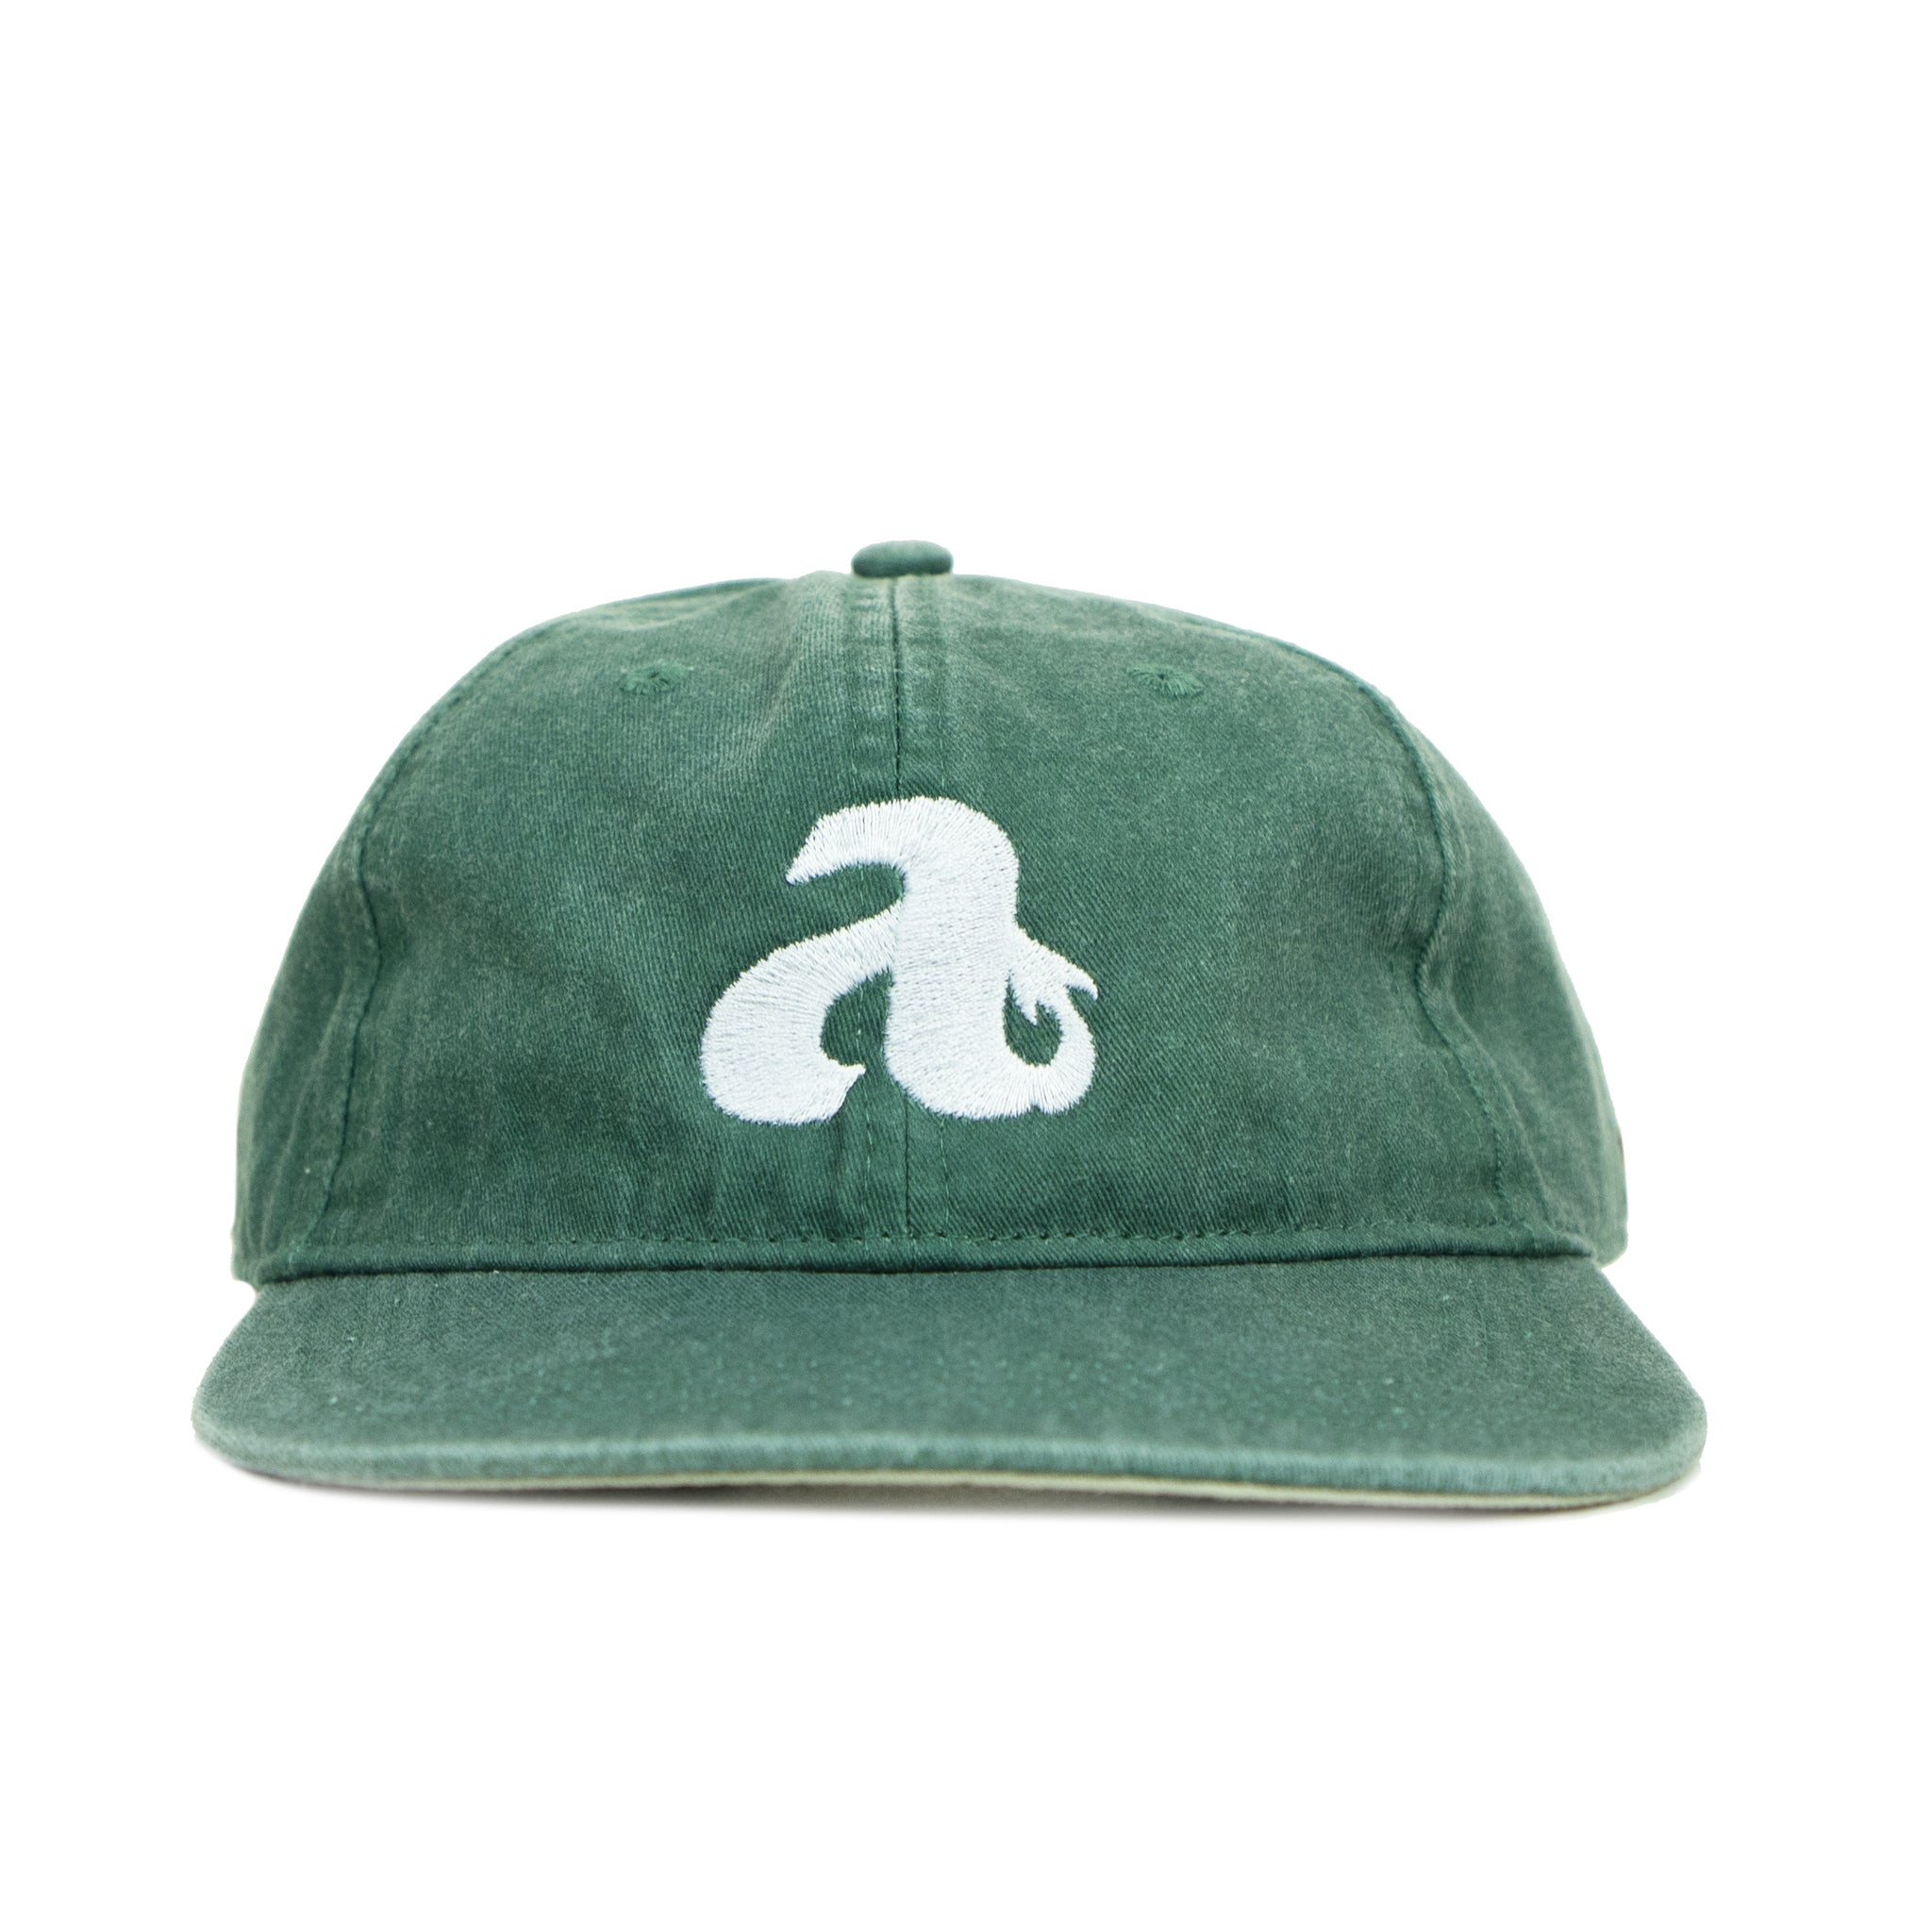 Green Chaos Foldable Hat